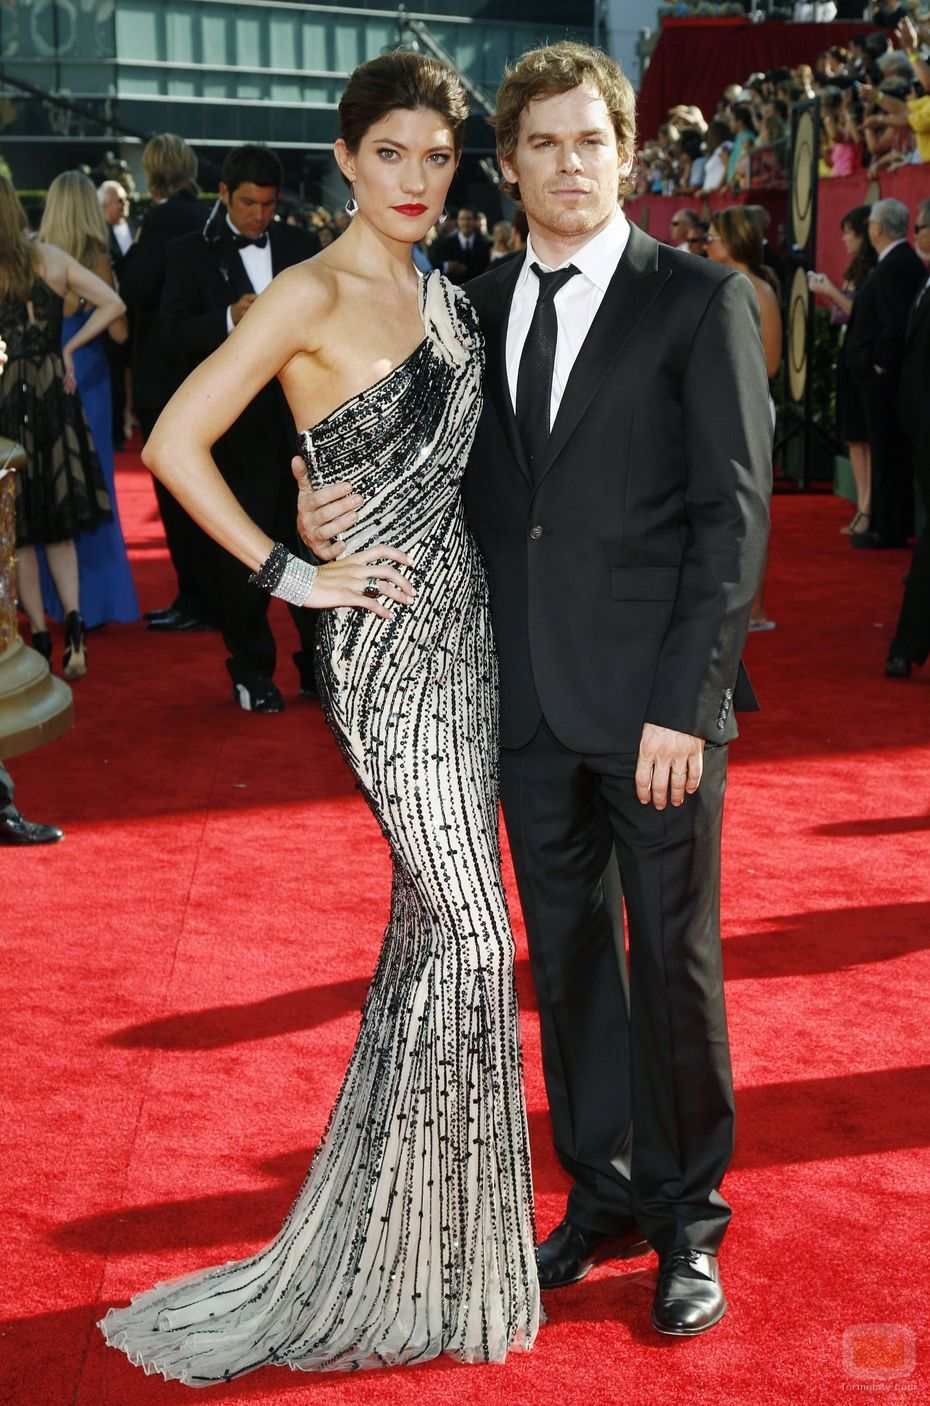 http://seacercaelinvierno.files.wordpress.com/2010/12/13151_jennifer-carpenter-y-michael-c-hall.jpg